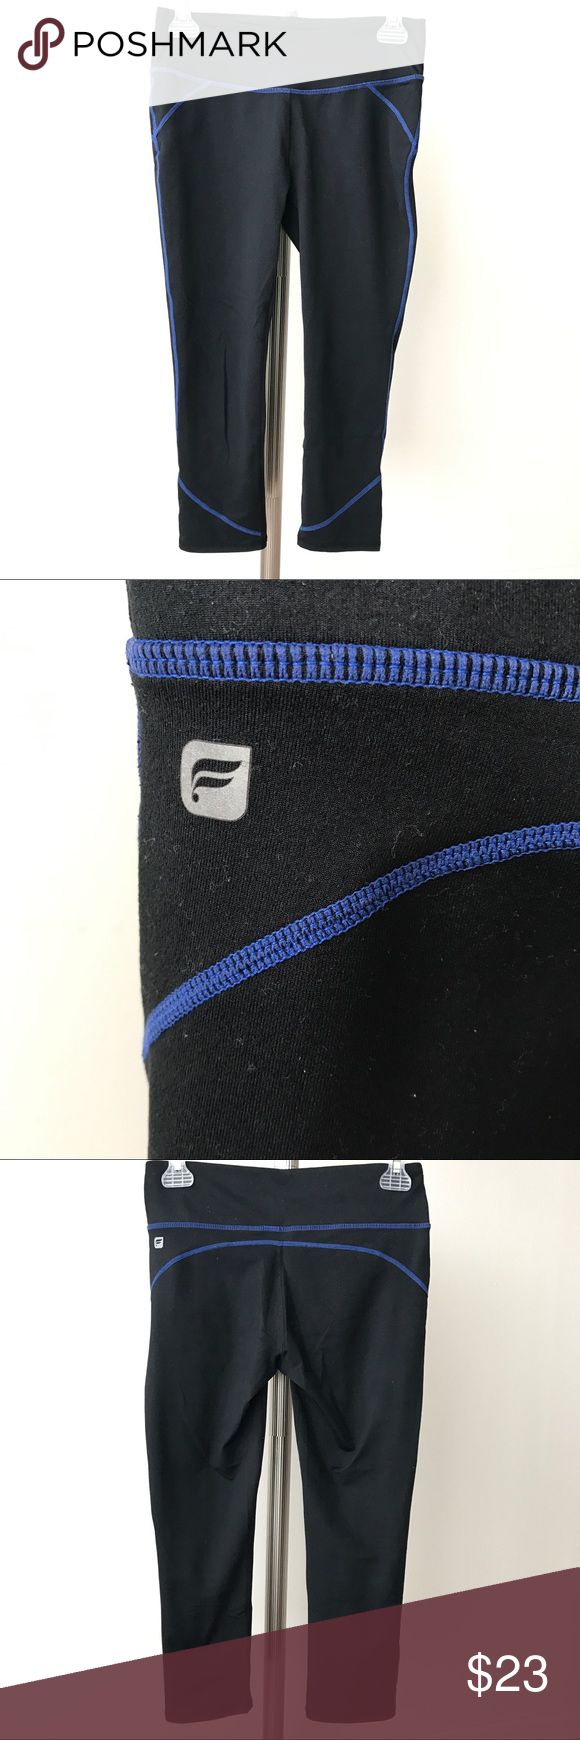 """Fabletics Lima Capri Black/Blue Stitch Size XS This is a pair of great quality Fabletics Lima Capri Black Electric Blue Stitch Size XS. There is 1 pocket in the waist.  Tag was torn.  Color: Black/Electric Blue Stitch. Fit: Maximum Compression Rise: Mid Inseam: 20""""  Fabric: Compression Knit (Made from a poly-spandex blend with all-way stretch, sweat-wicking technology and UPF 50+ protection. Brushed, cotton-like fabric with medium compression.)  Fabric Content: 88% Polyester/12% Spandex…"""